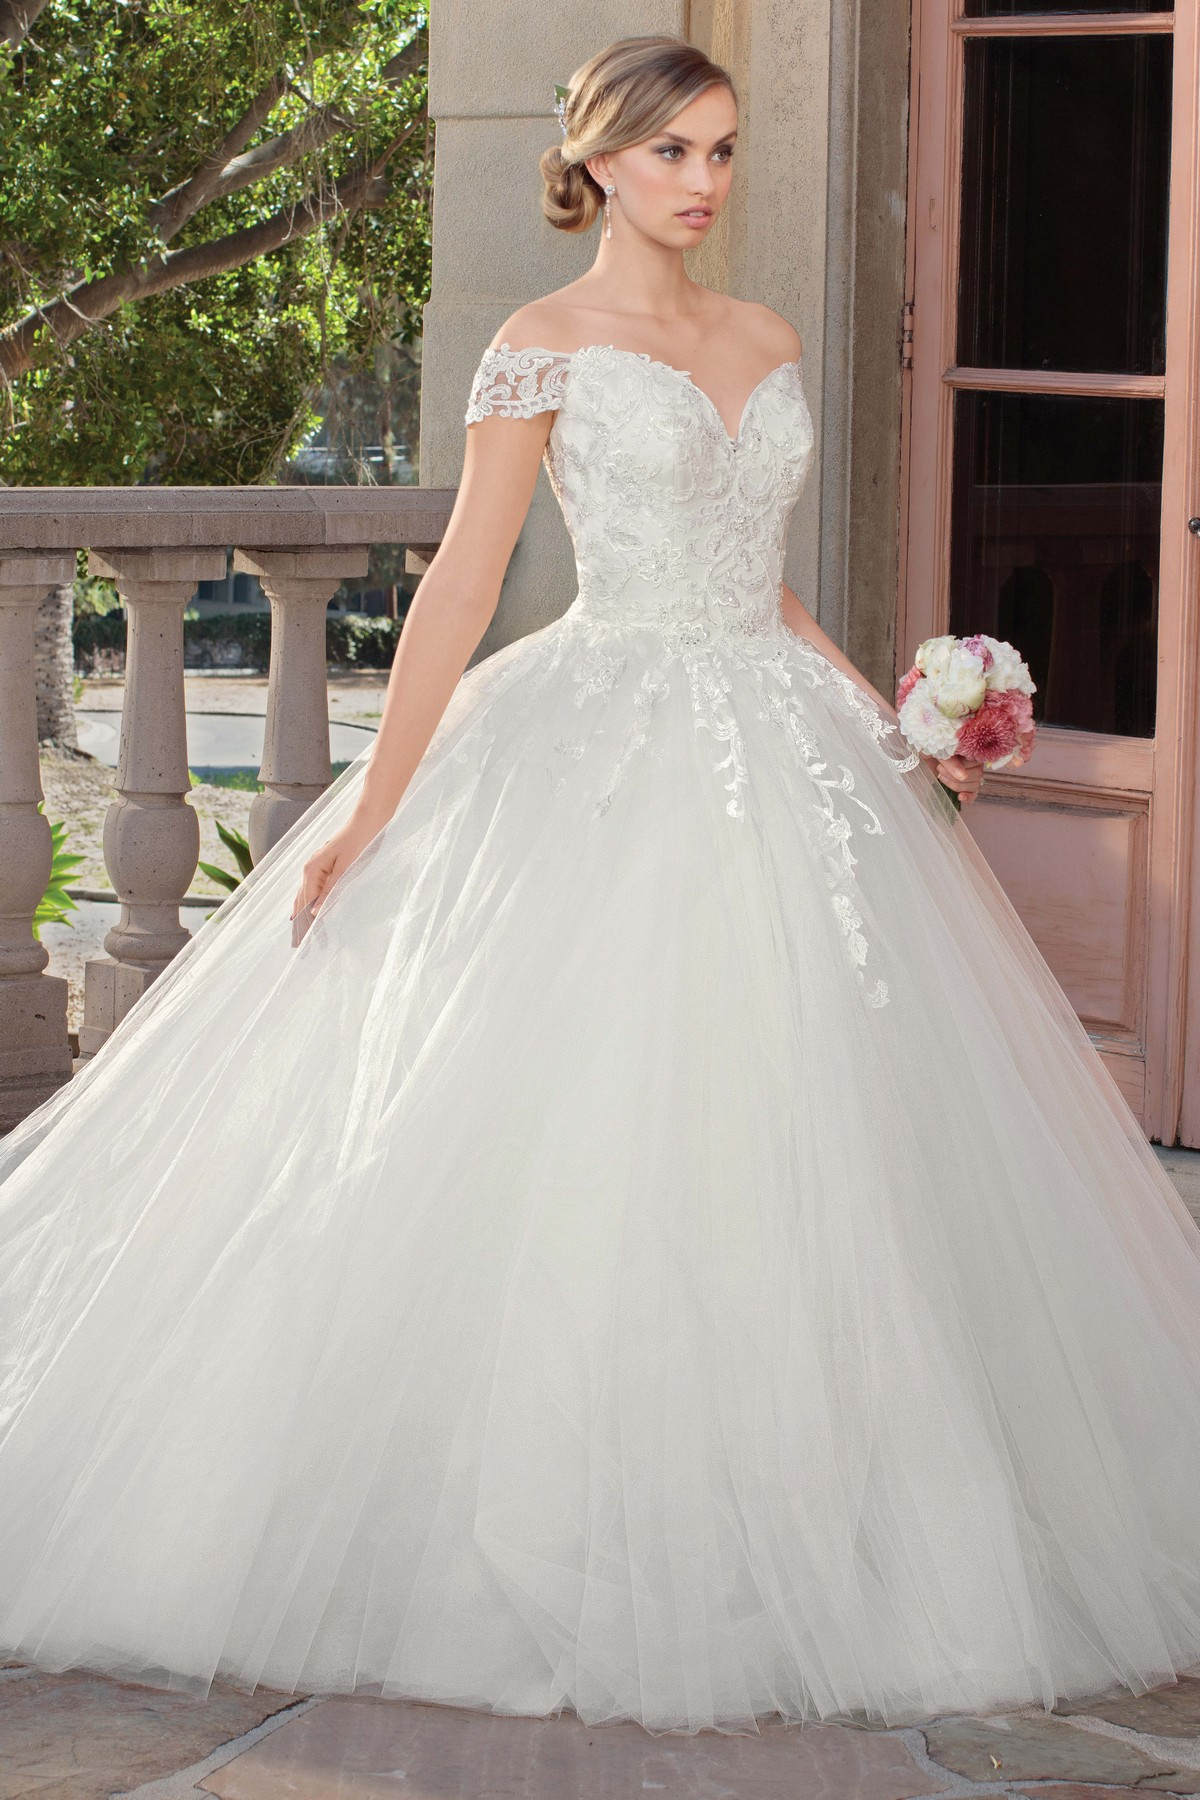 a14939109ca Style 2312 Gracie by Casablanca Bridal - Find Your Dream Dress